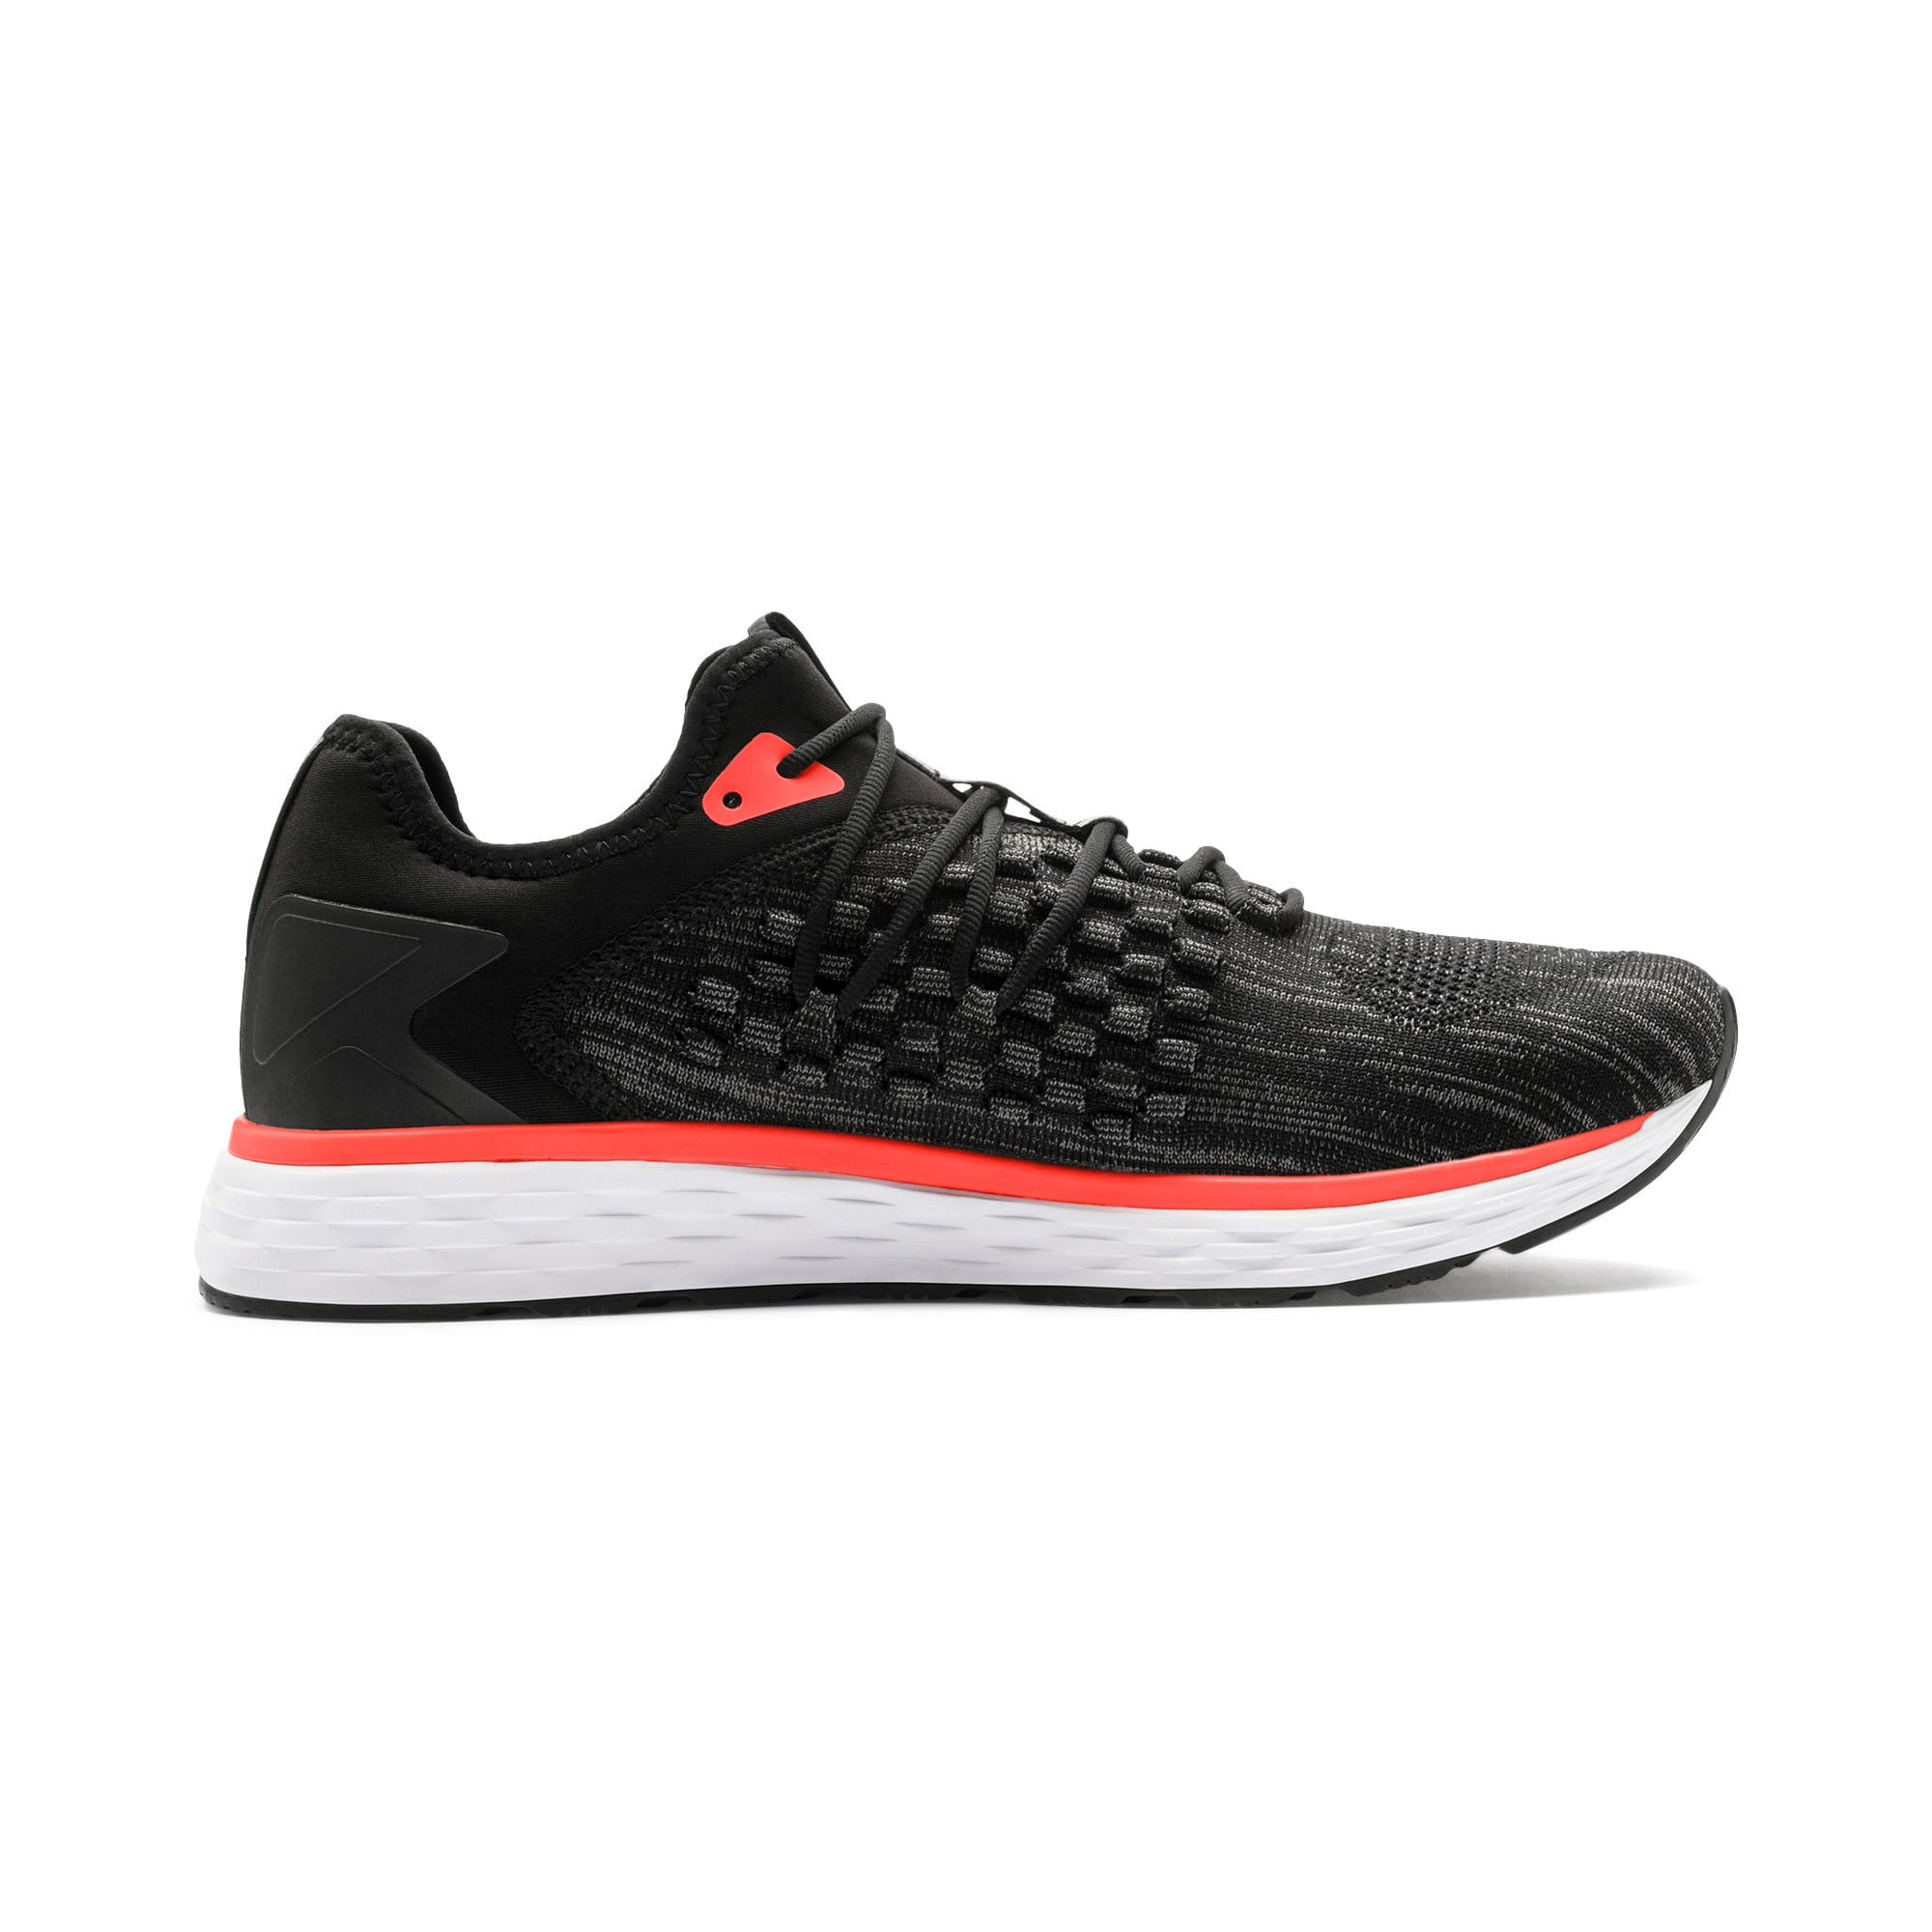 Thumbnail 6 of SPEED FUSEFIT Men's Running Shoes, Puma Black-Nrgy Red, medium